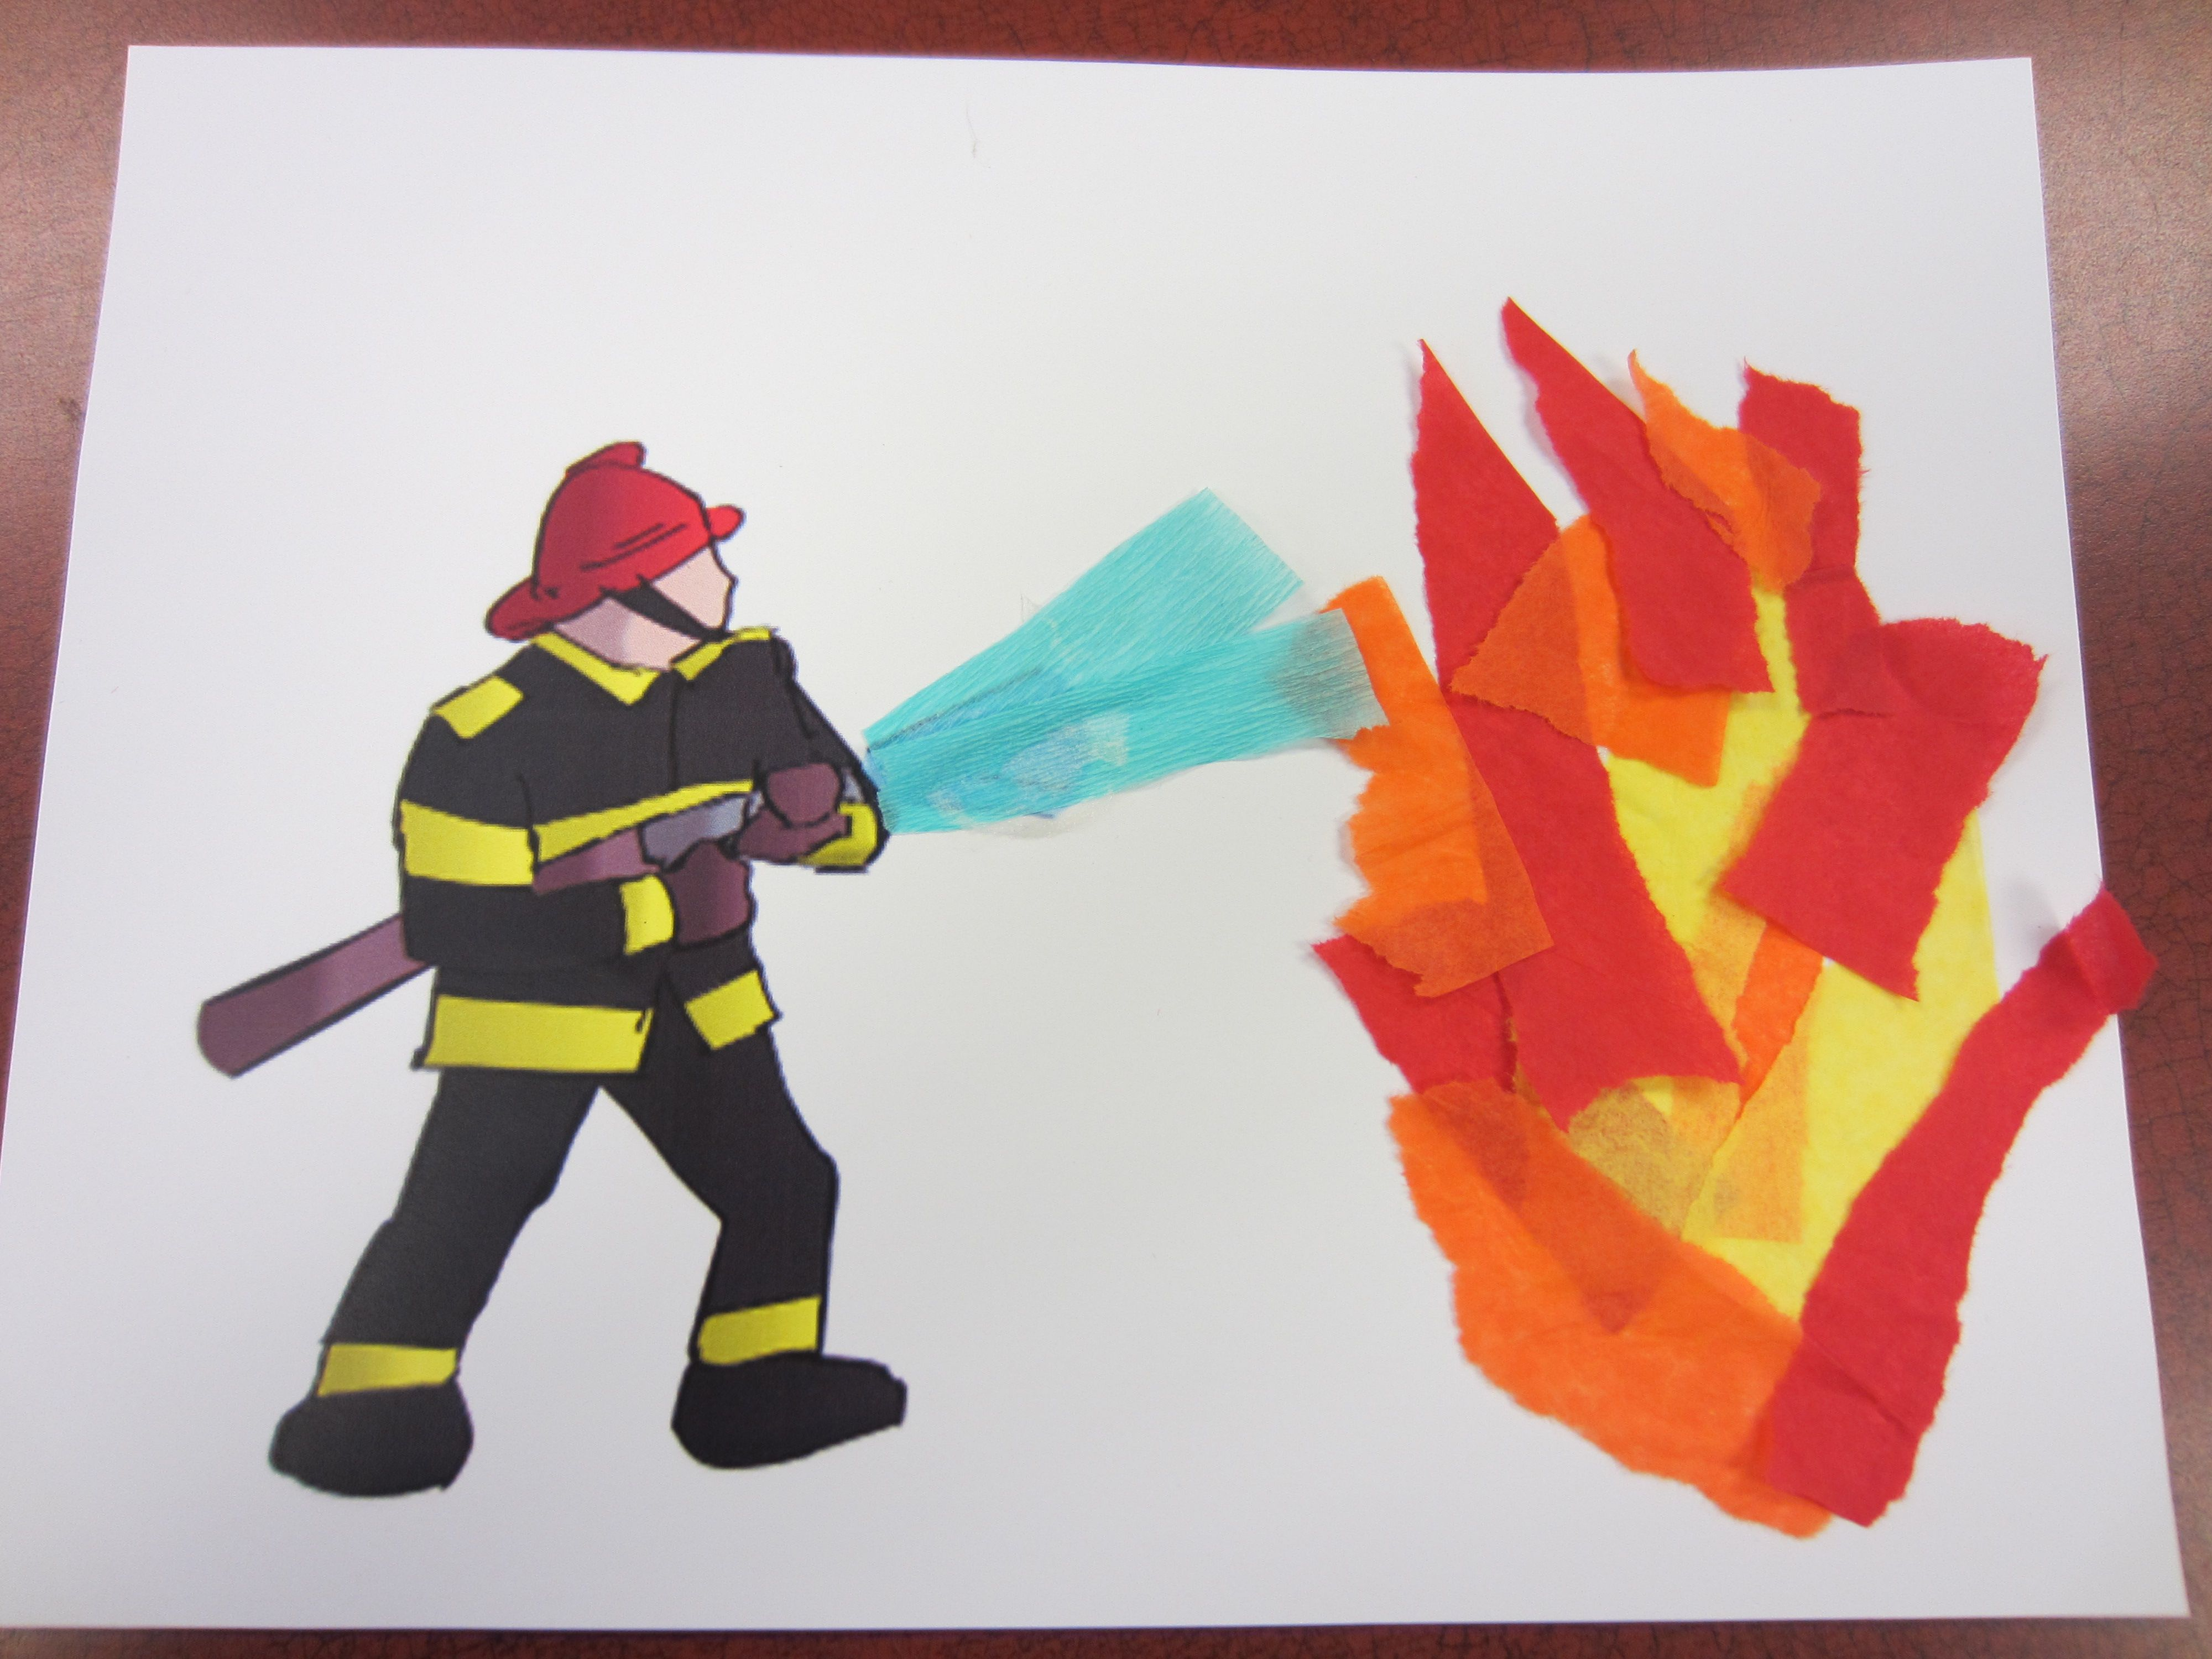 A Pre Printed Firefighter Picture And Torn Tissue Paper